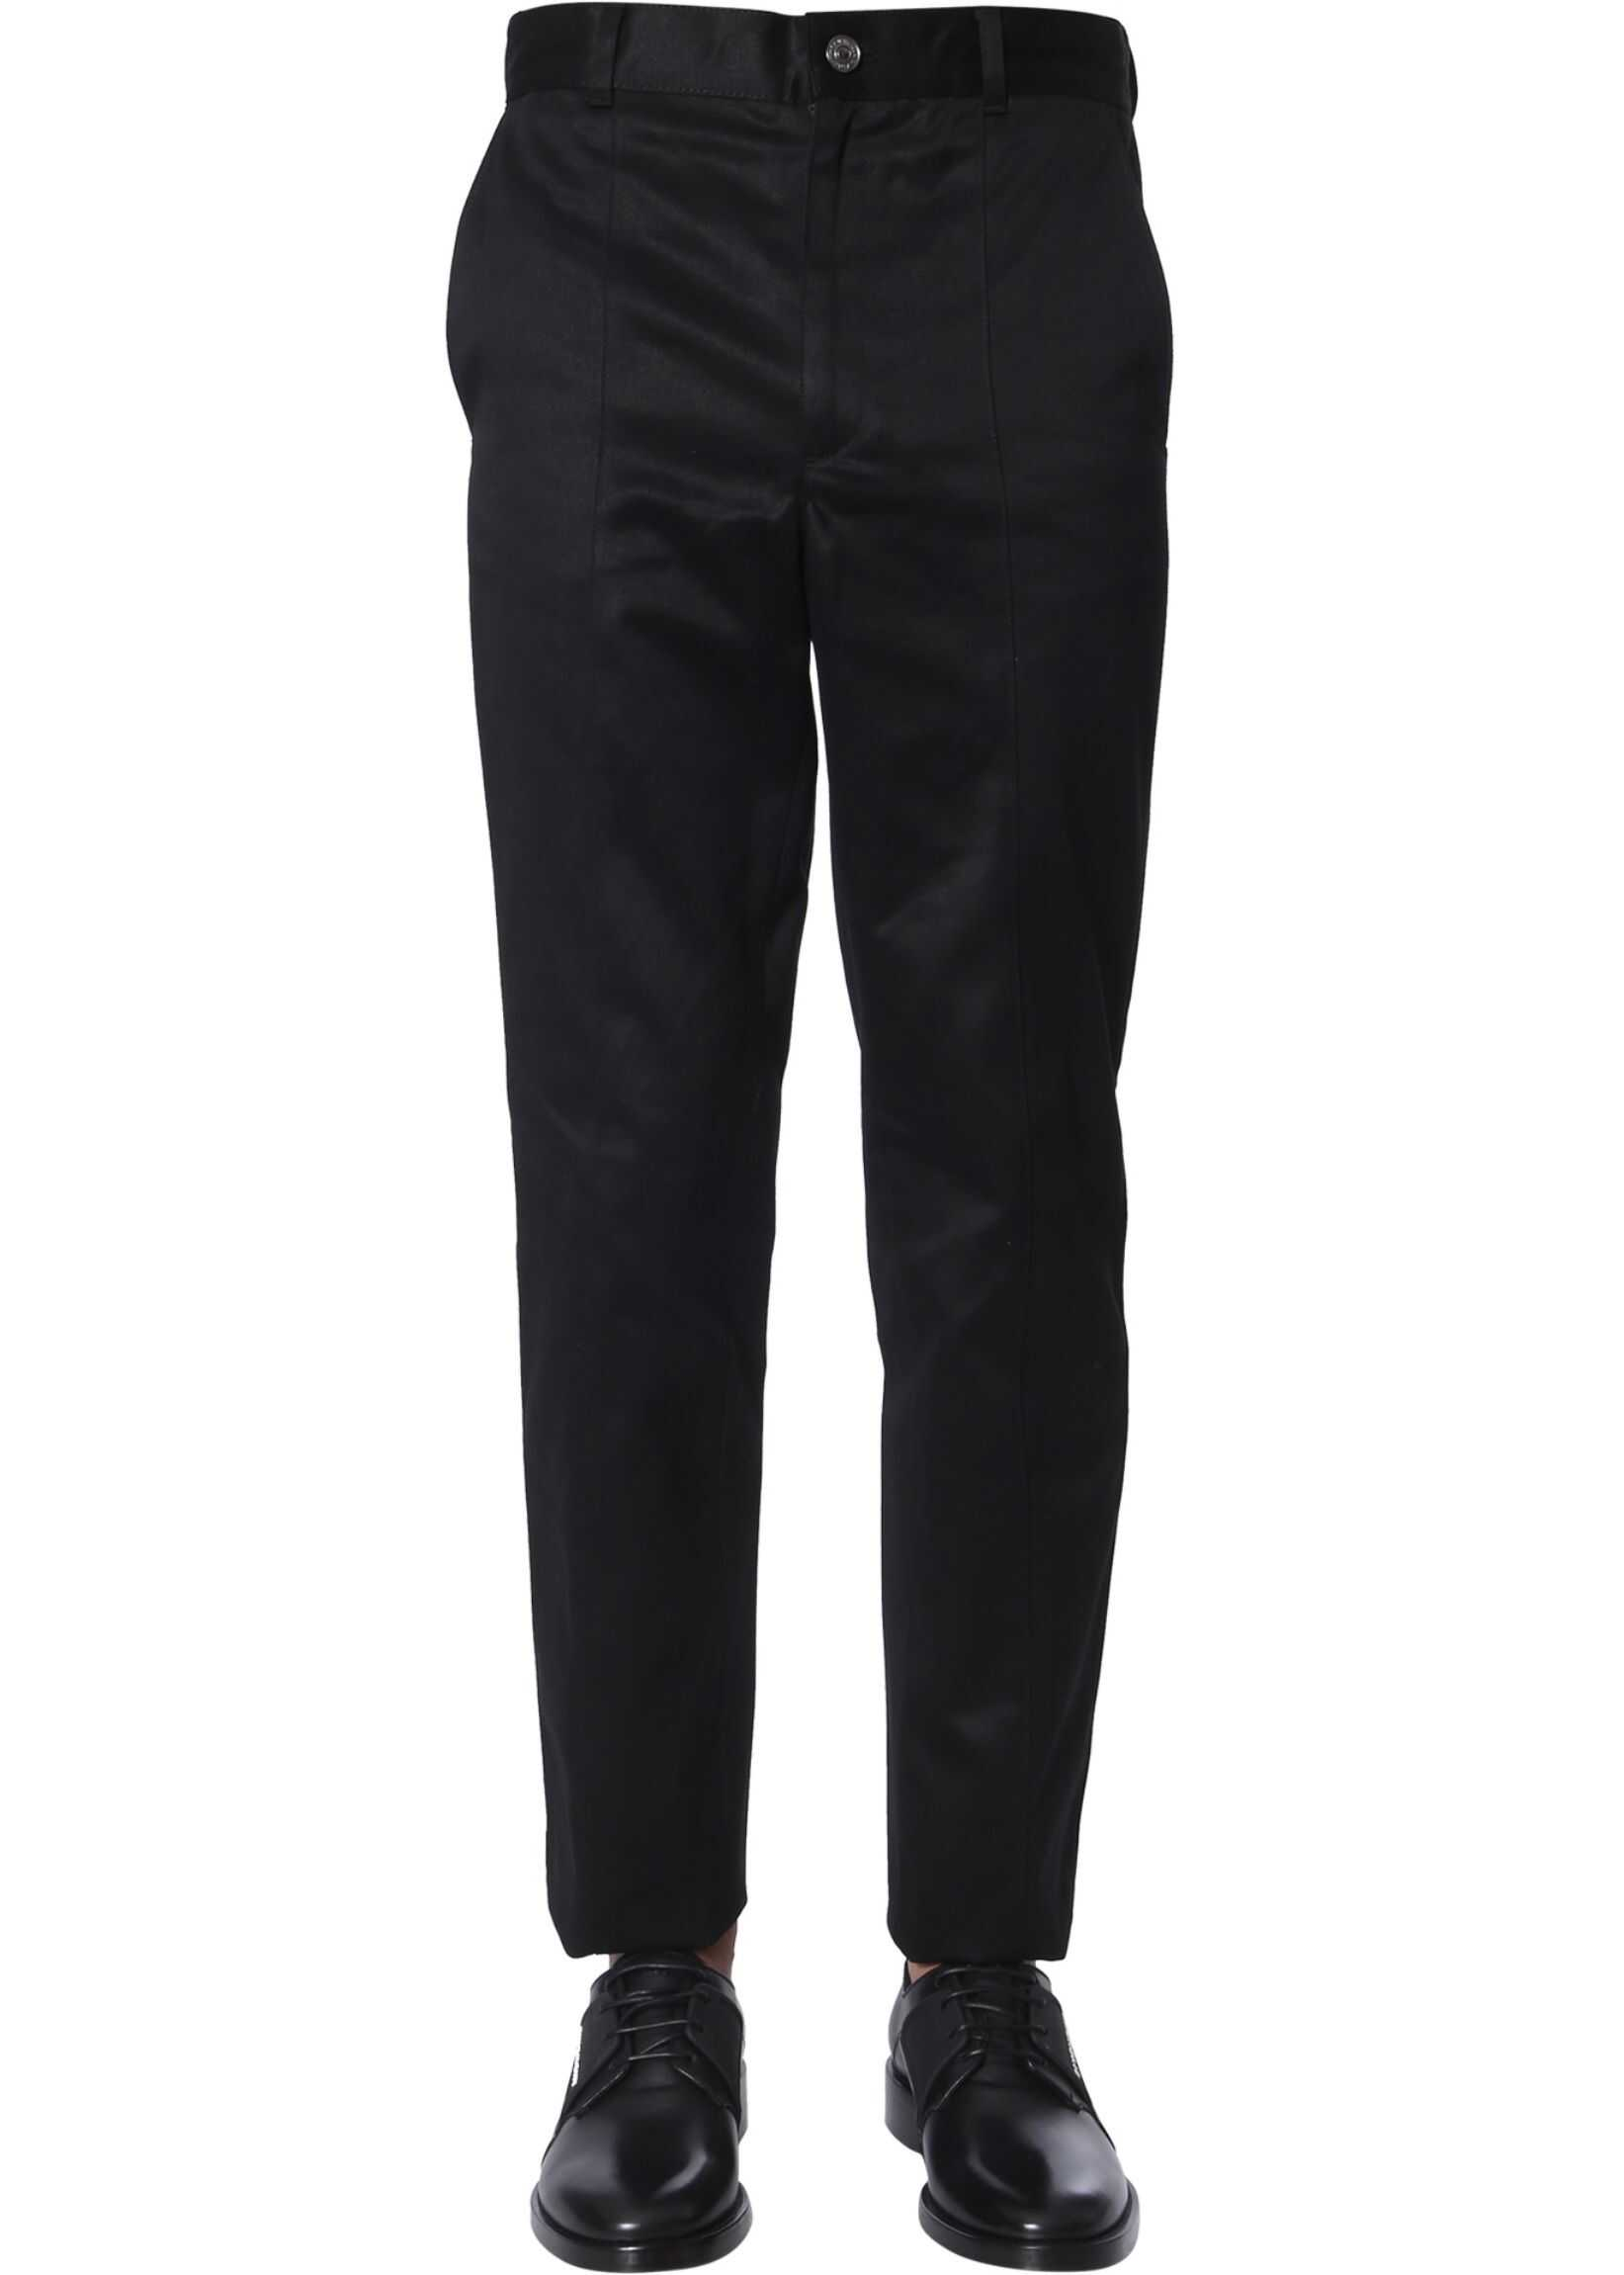 Givenchy Slim Fit Pants BLACK imagine